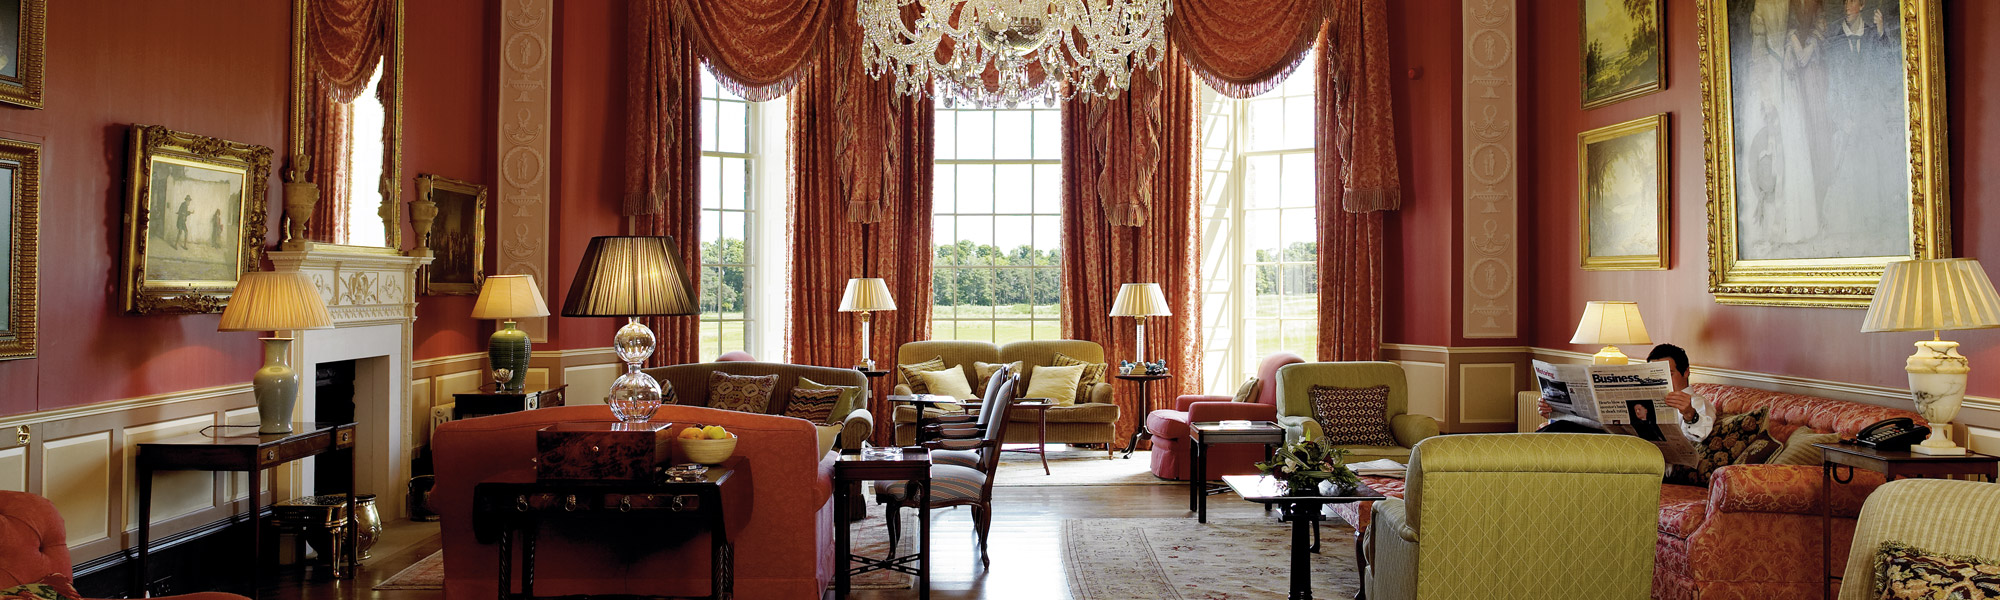 Photo of large lounge at Archerfield House, with open fire, sofas, lamps and chandelier